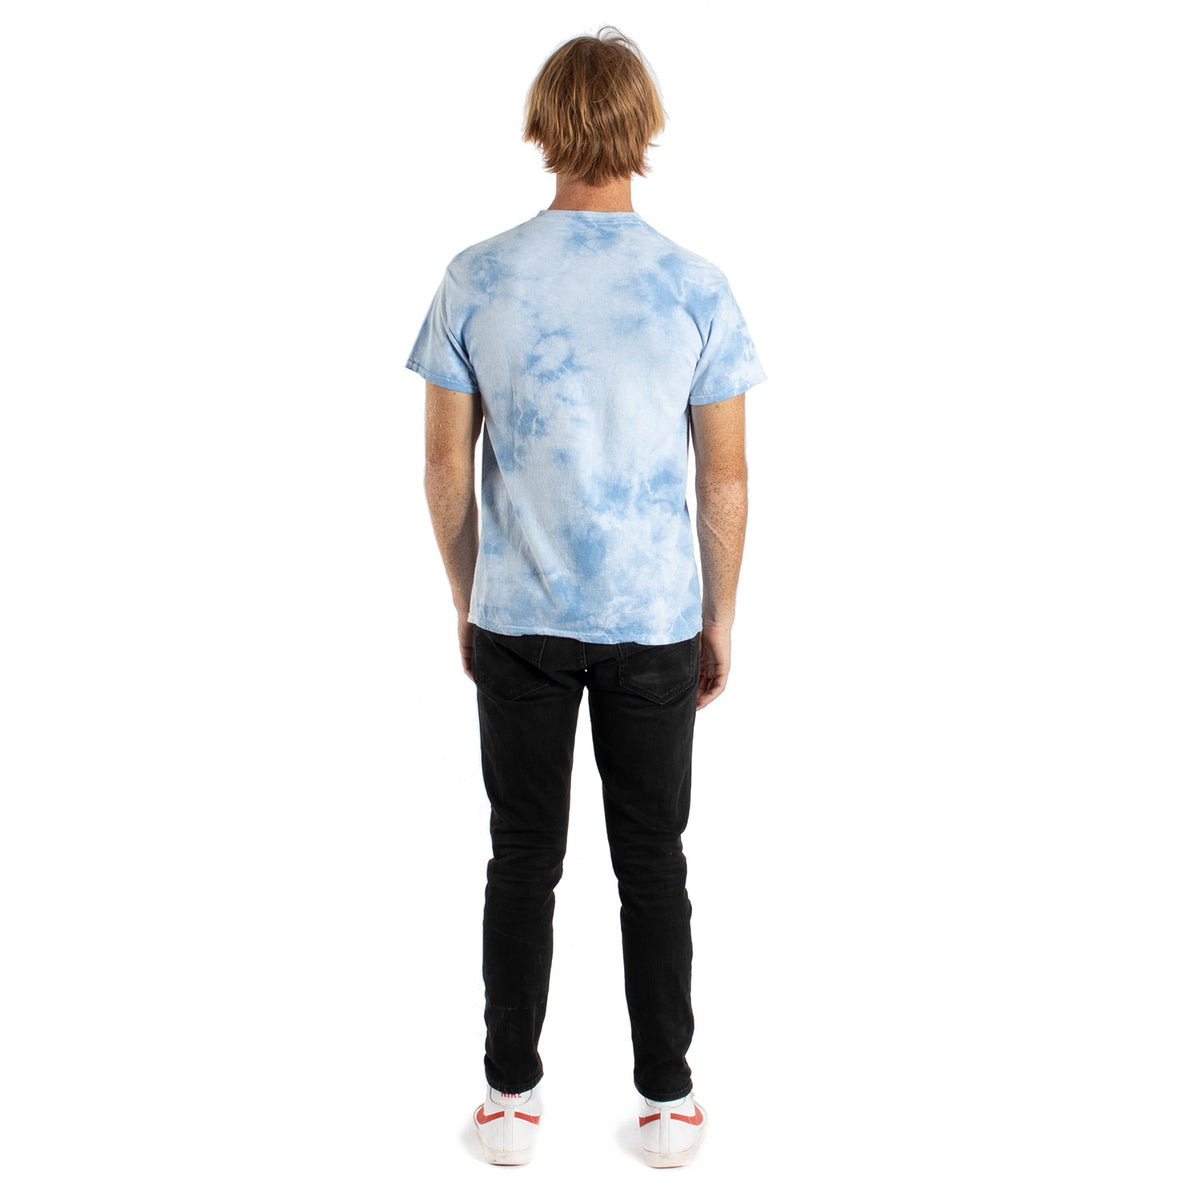 Altru Apparel Girl with Pearl Earring tie-dye tee